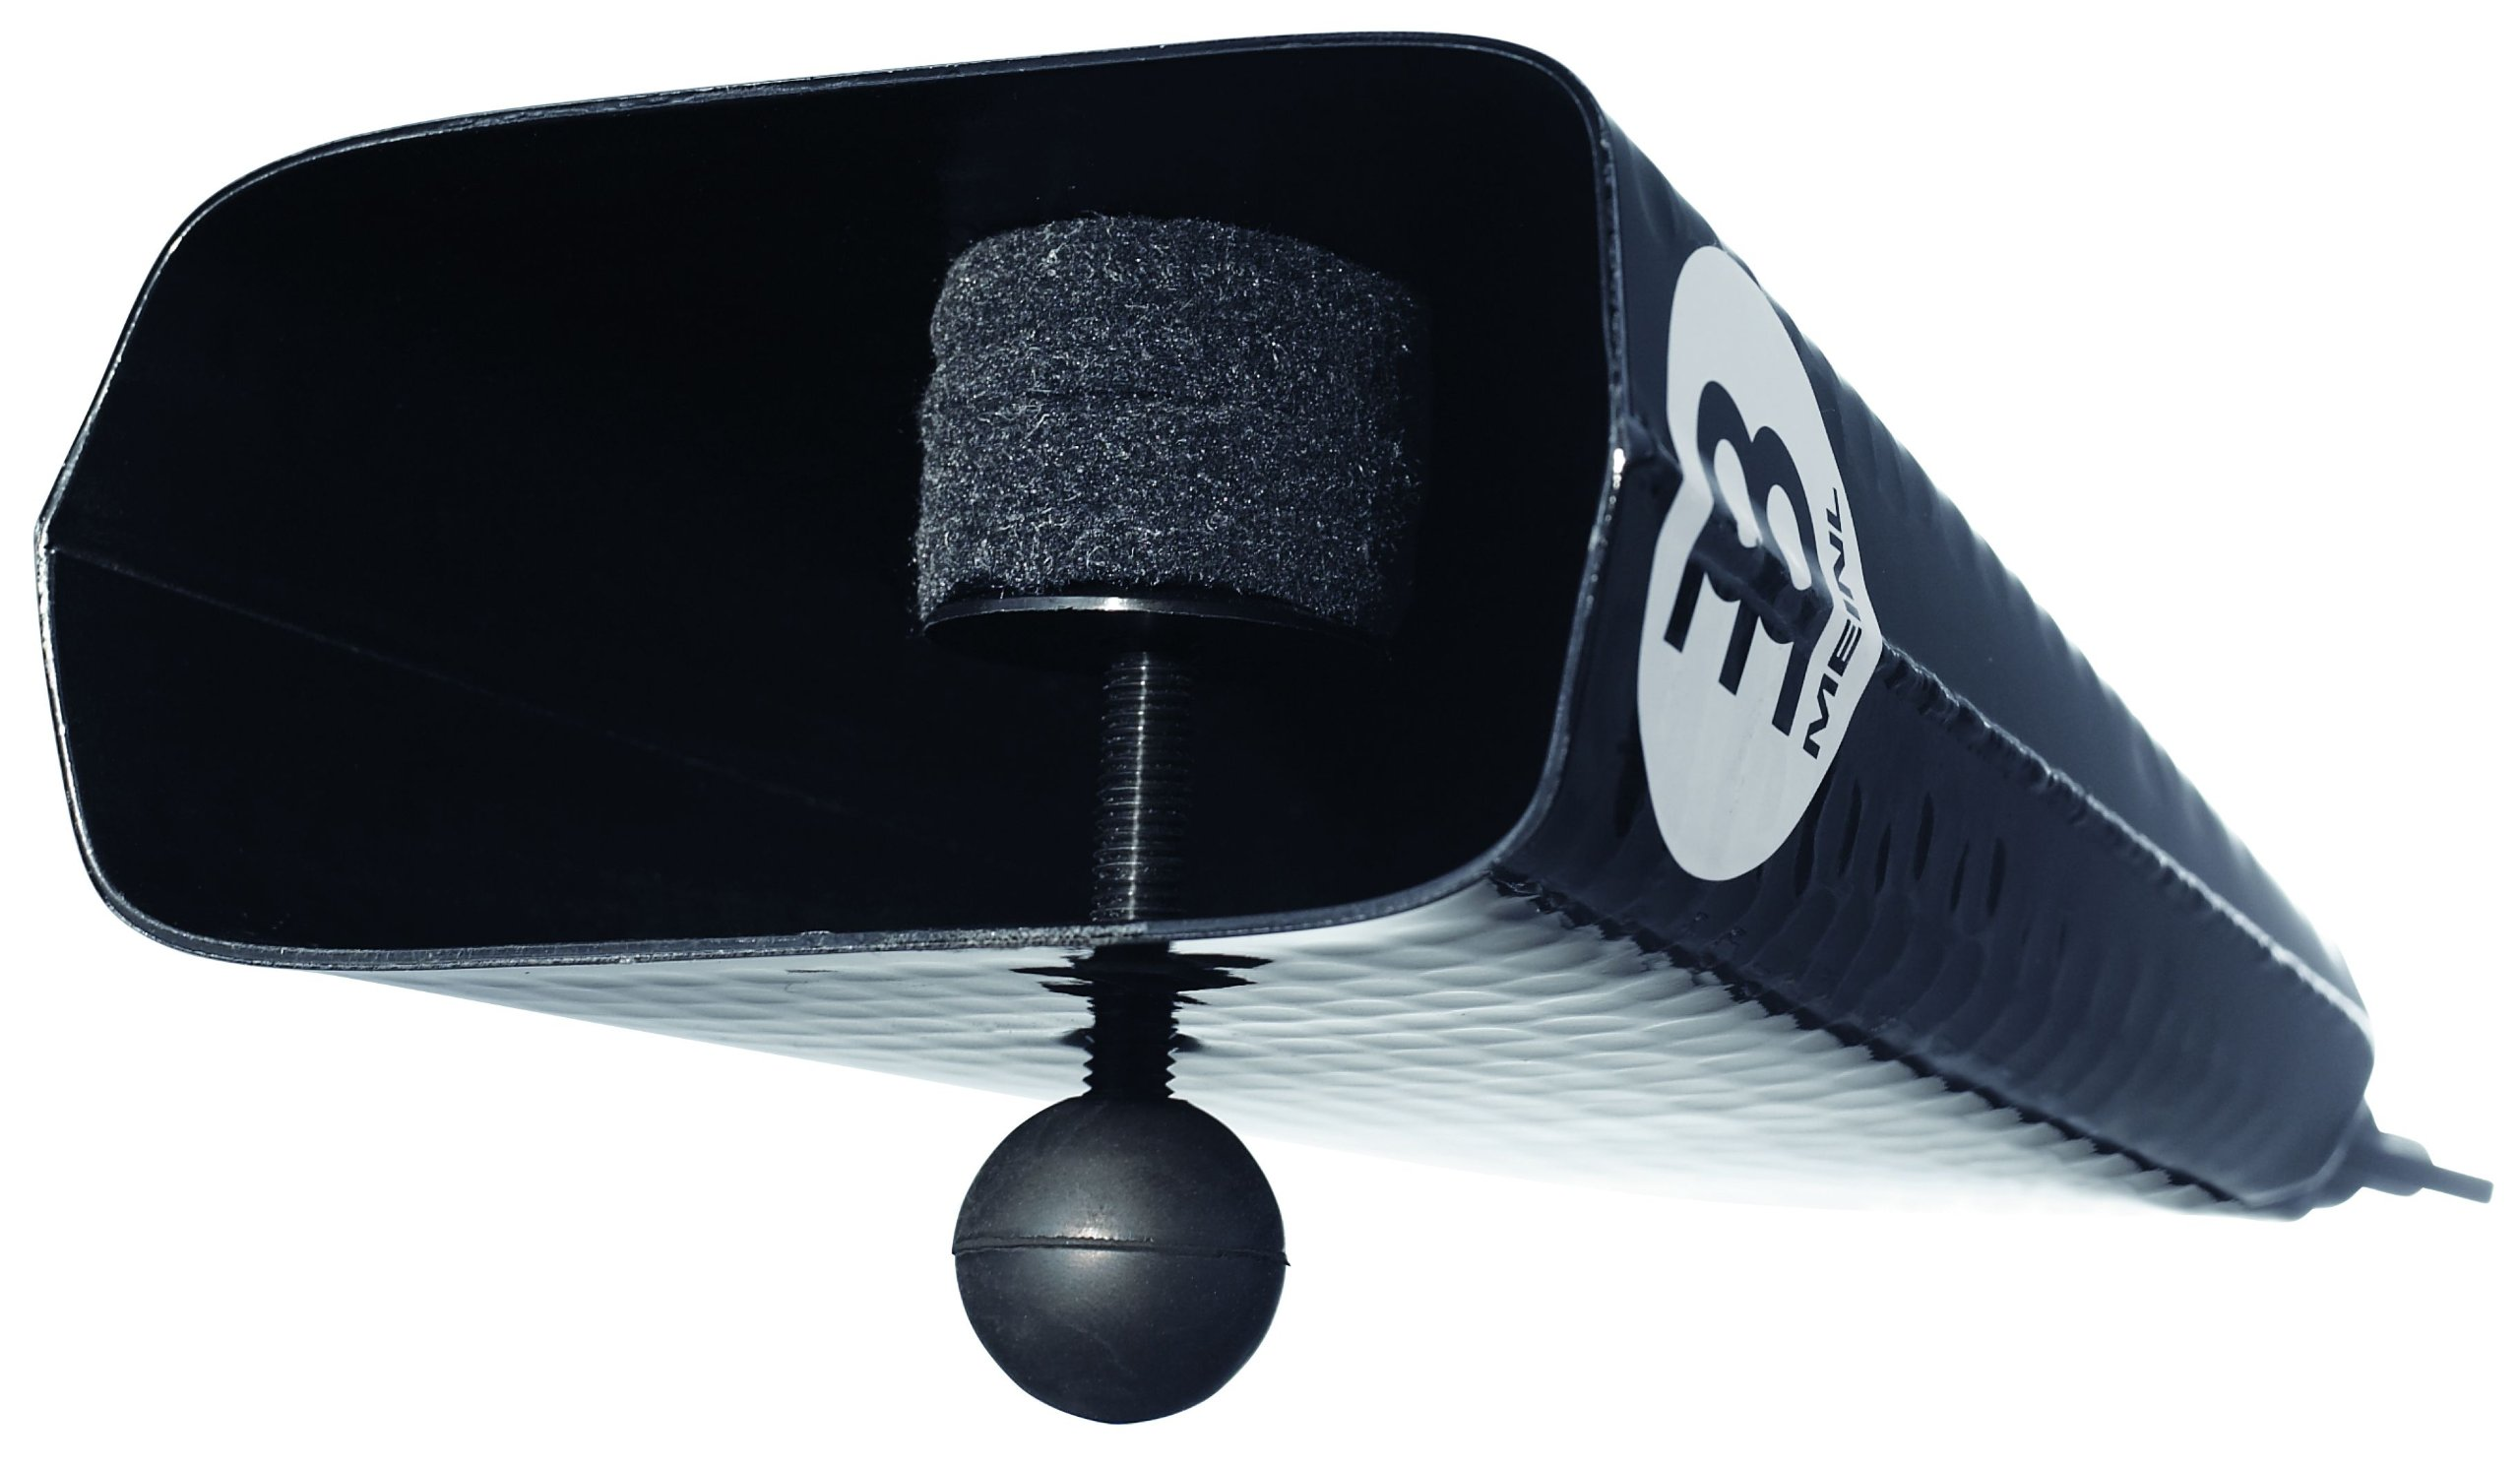 Meinl Percussion RM80B Russ Miller Signature Adjustable 8-Inch Multi-Bell Cowbell by Meinl Percussion